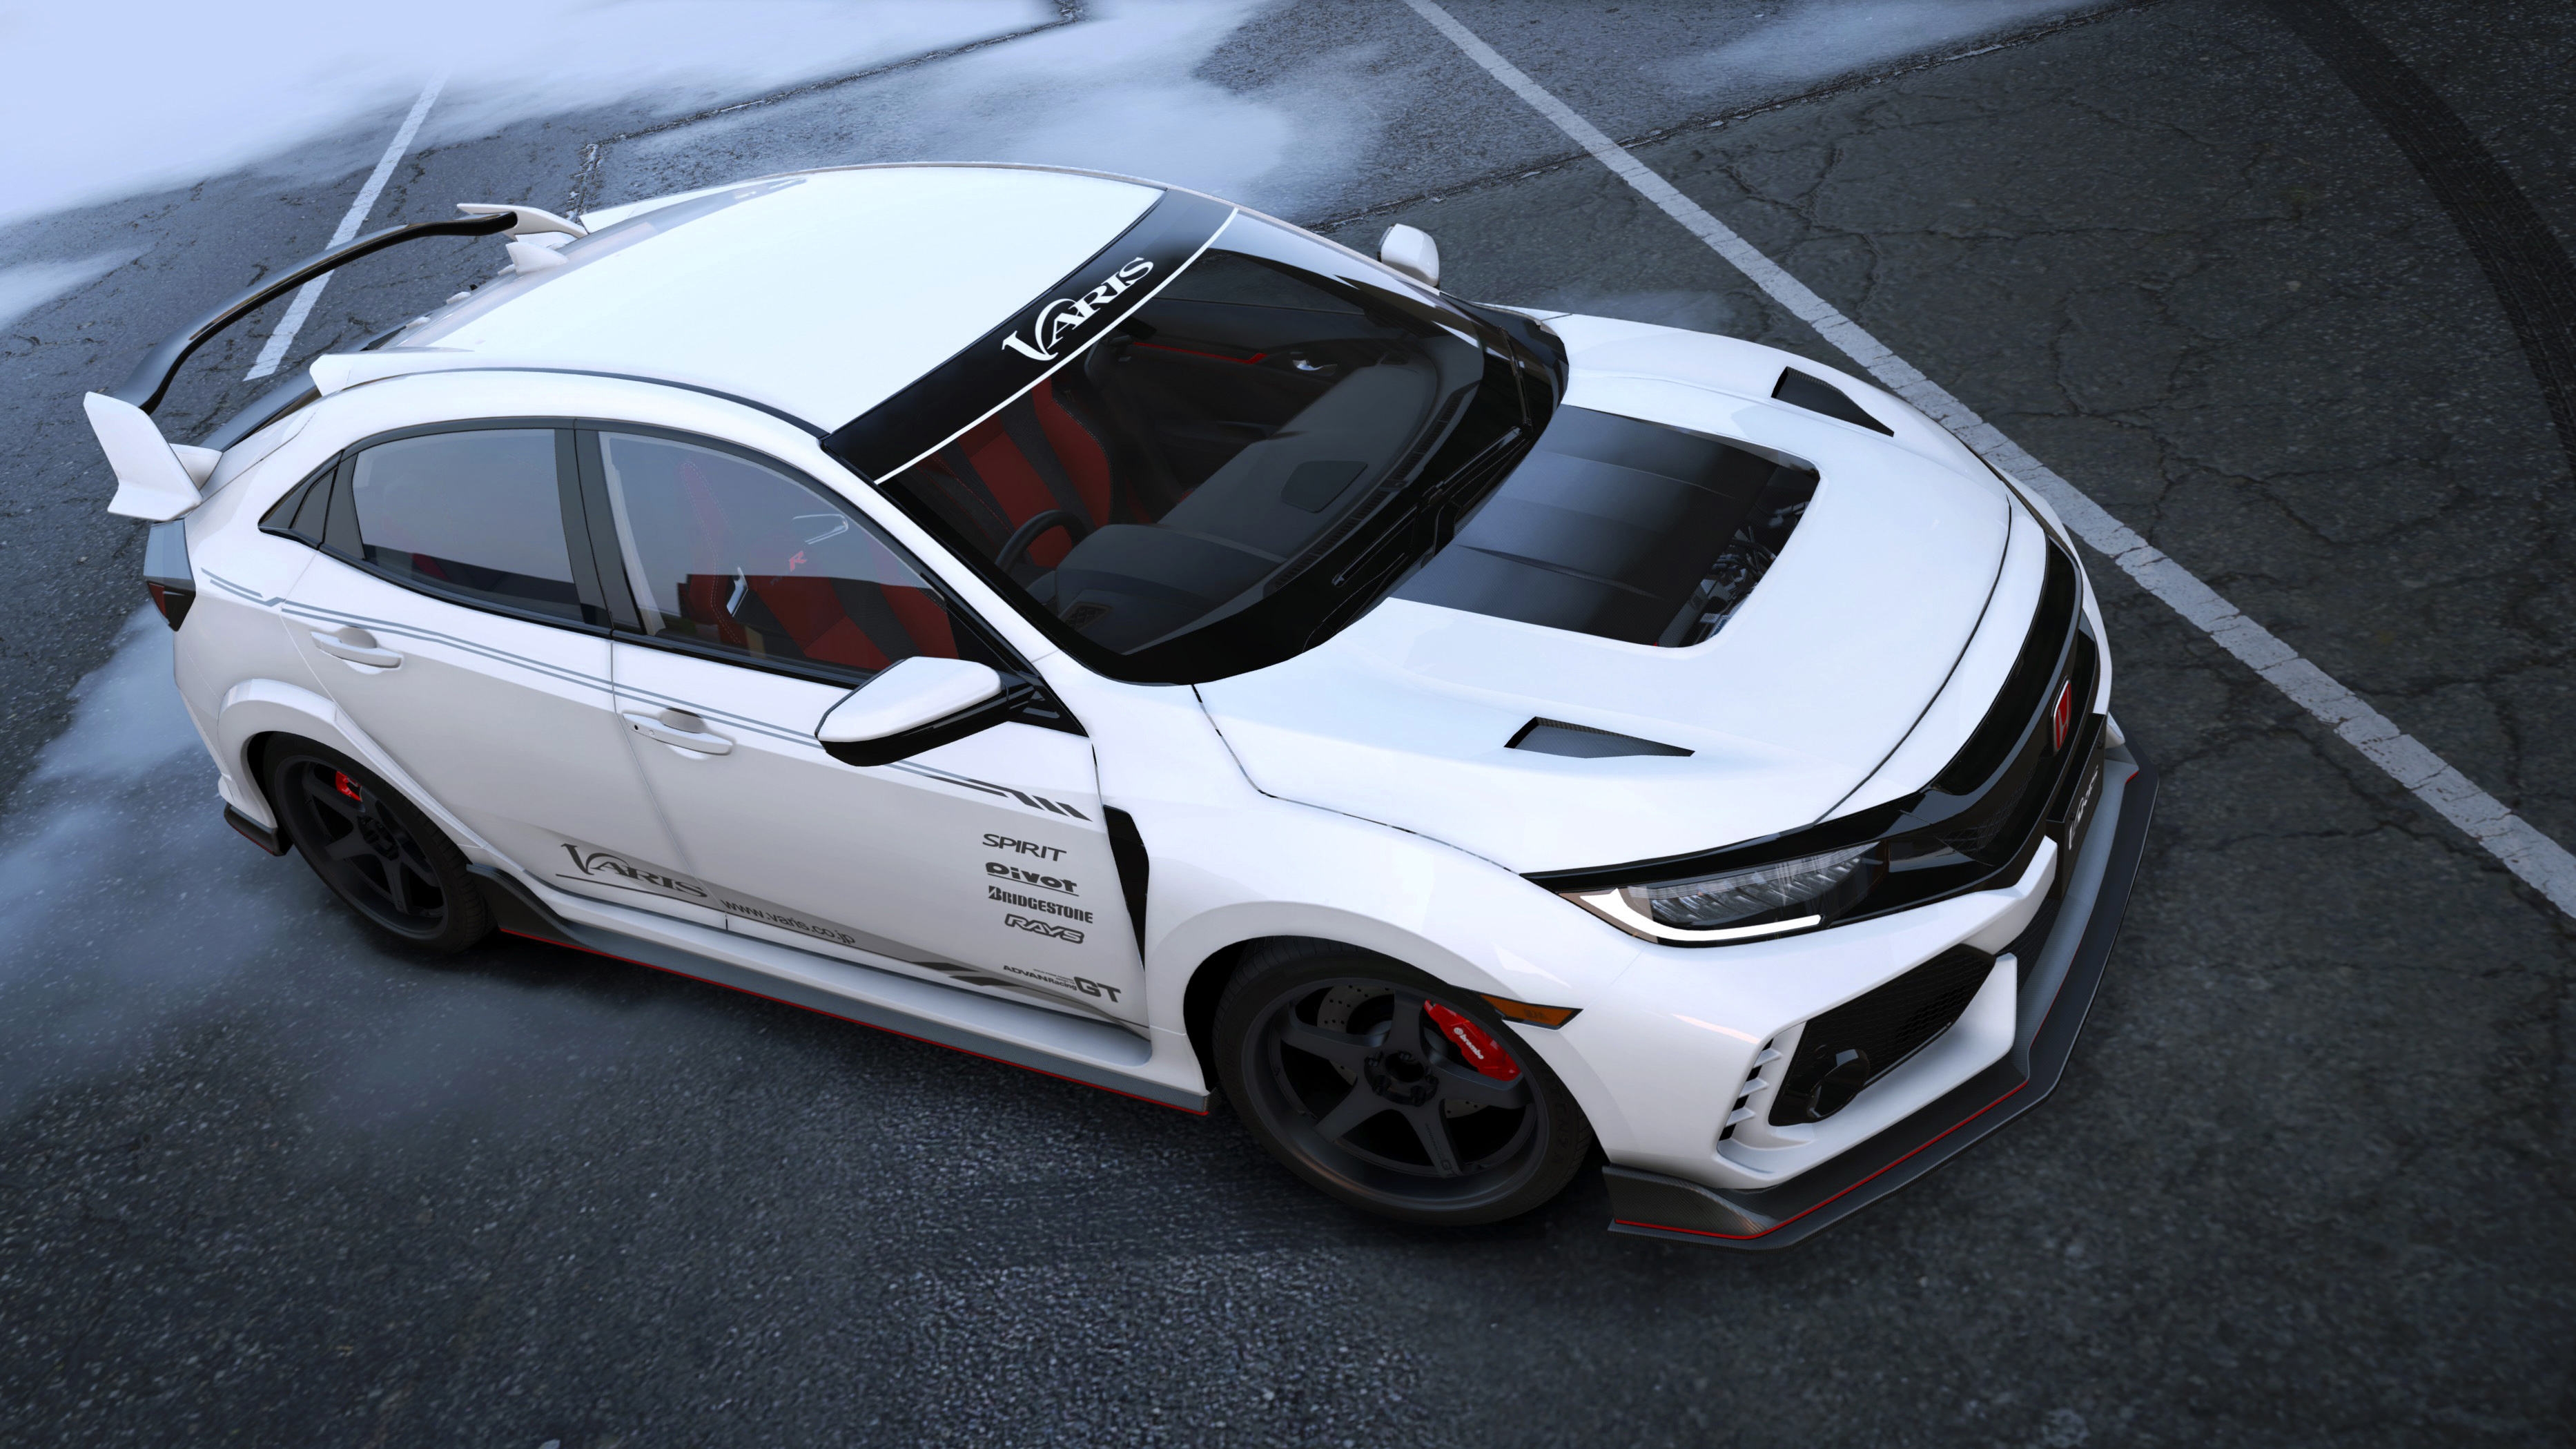 2018 Honda Civic Type R Fk8 Varis Rhd Gta5 Mods Com